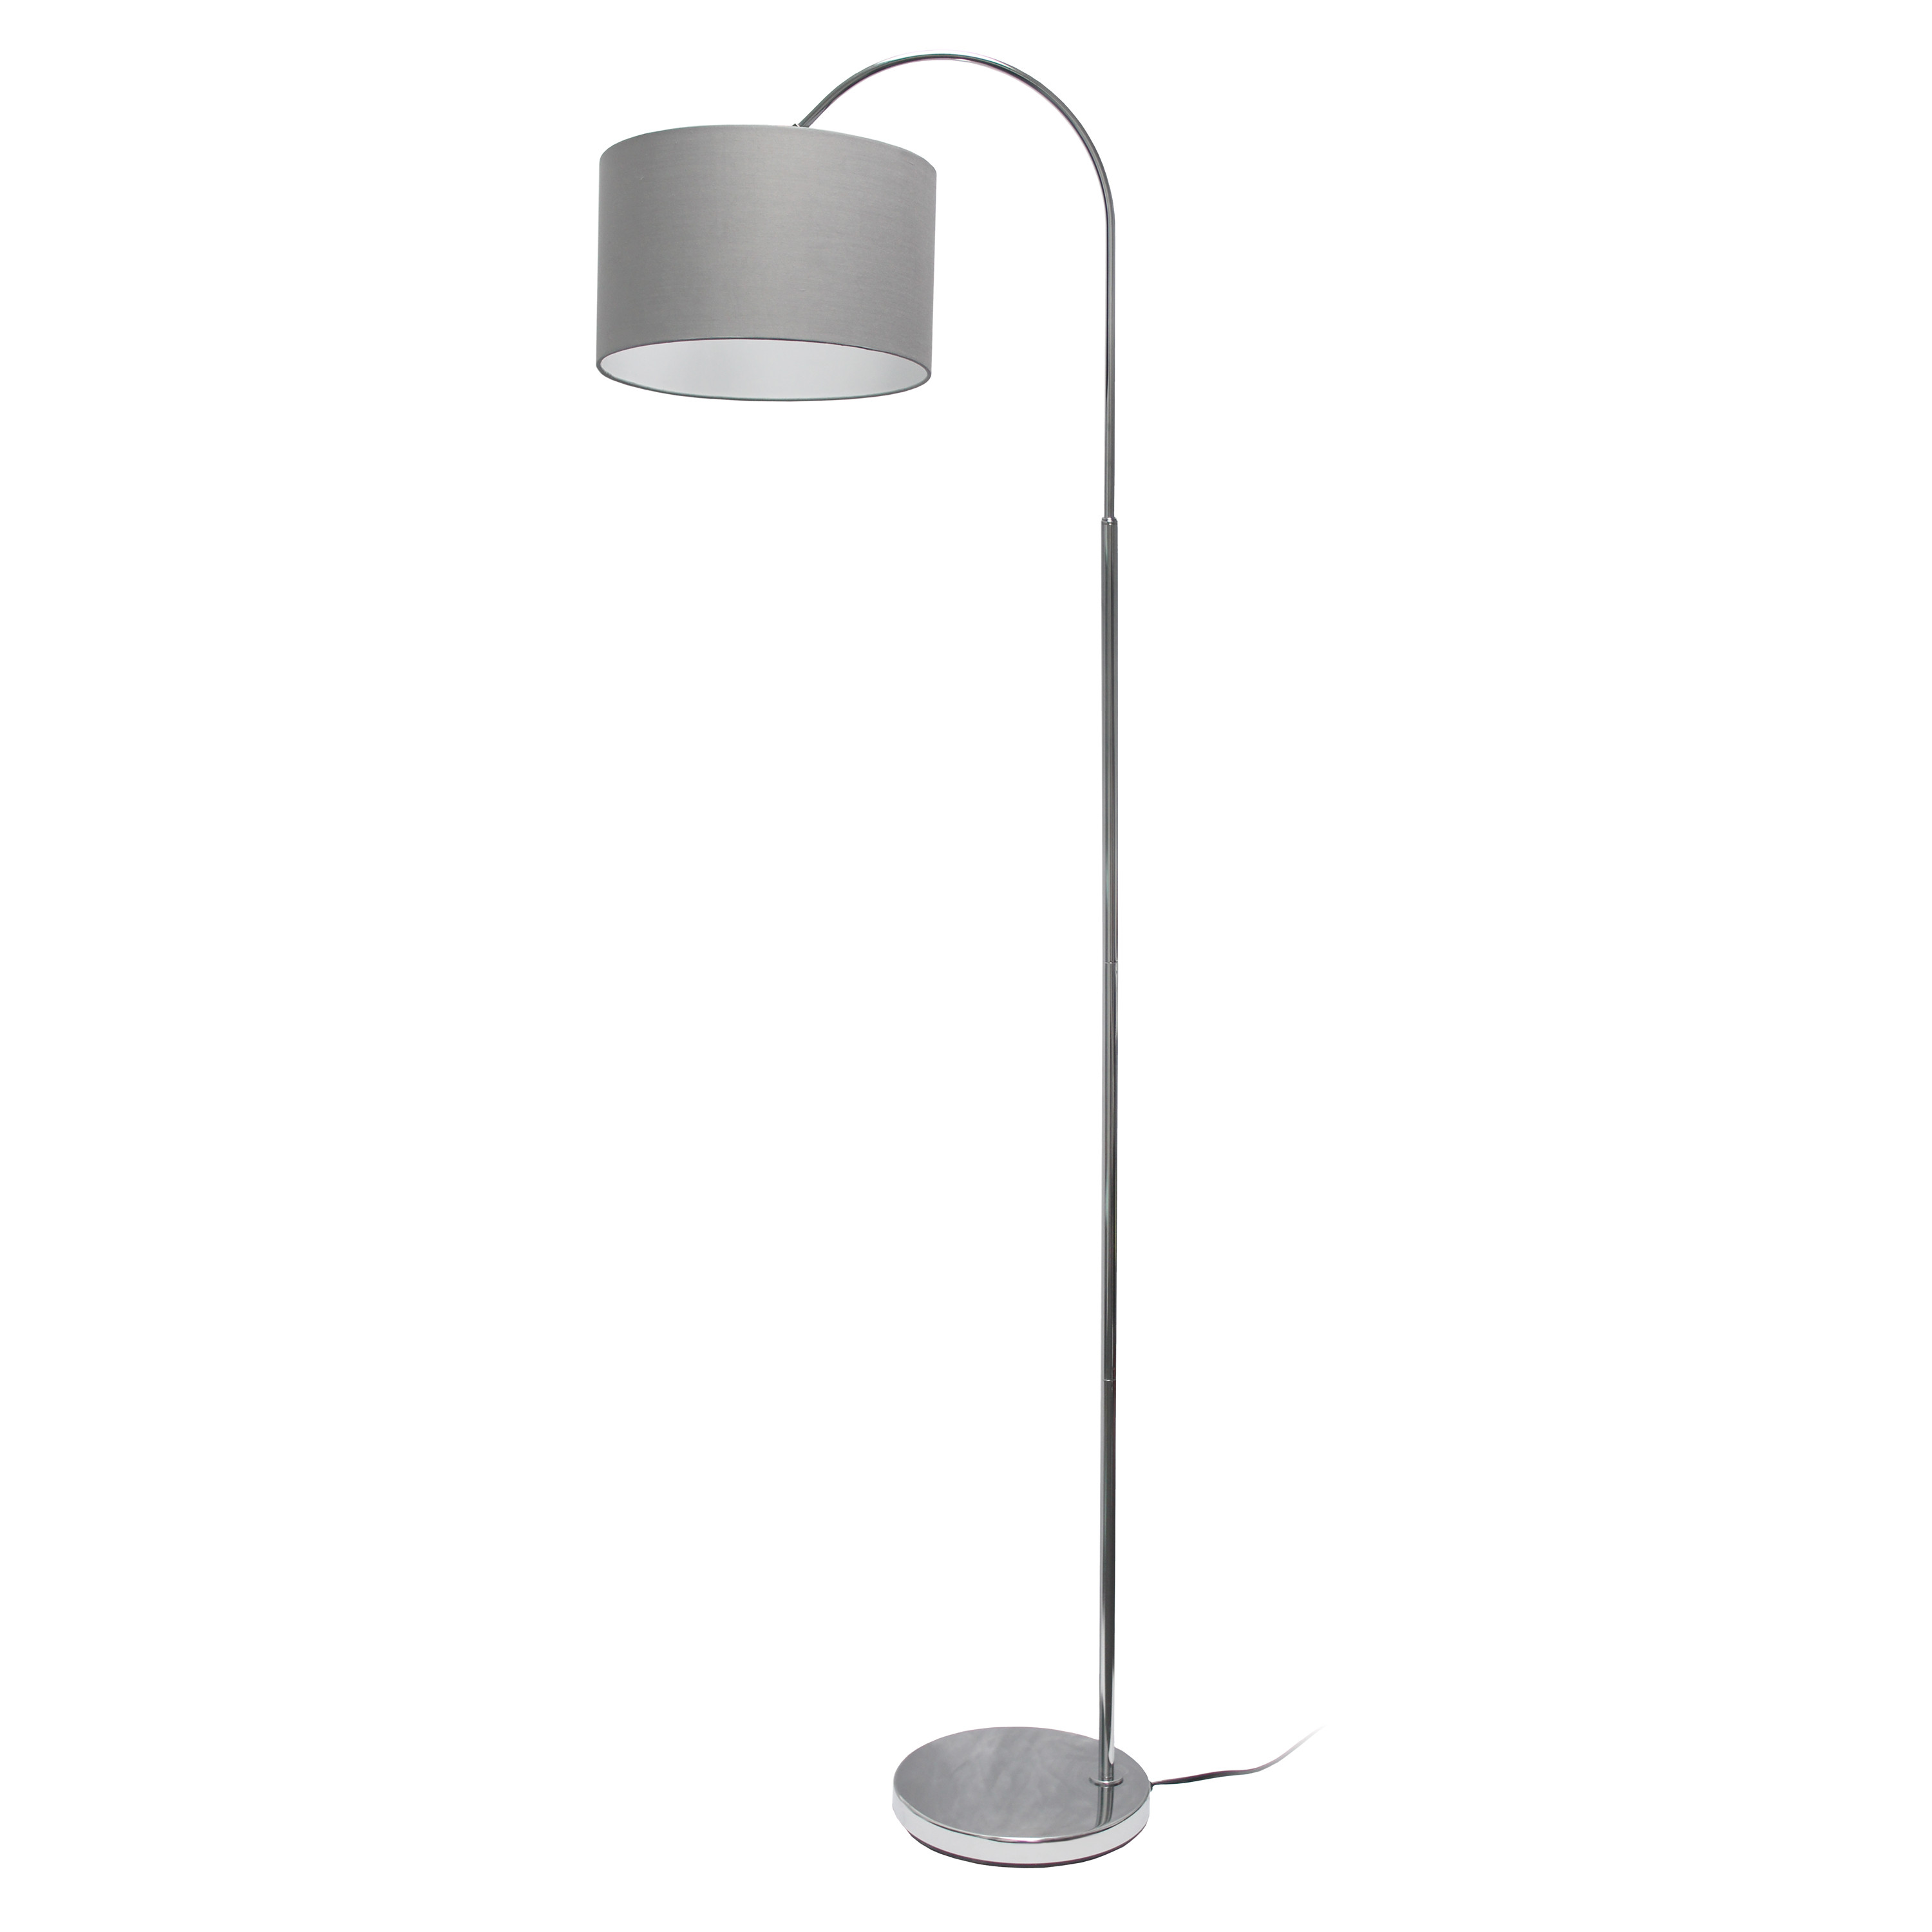 Simple Designs Arched Brushed Nickel Floor Lamp, Gray Shade